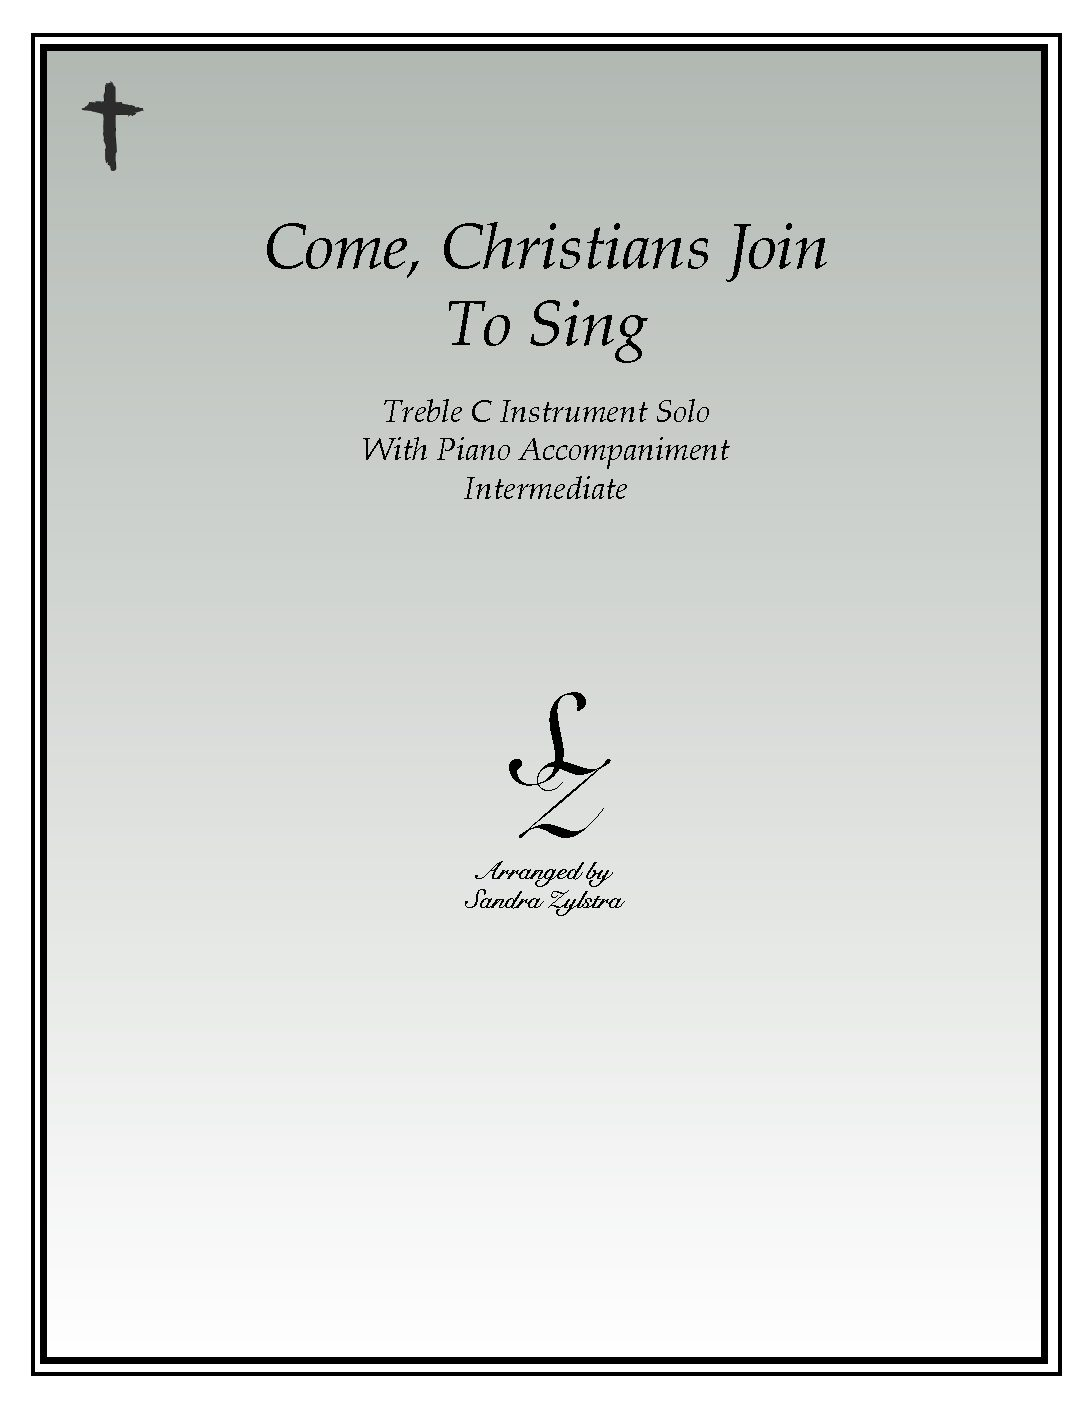 Come, Christians Join To Sing -Treble C Instrument Solo